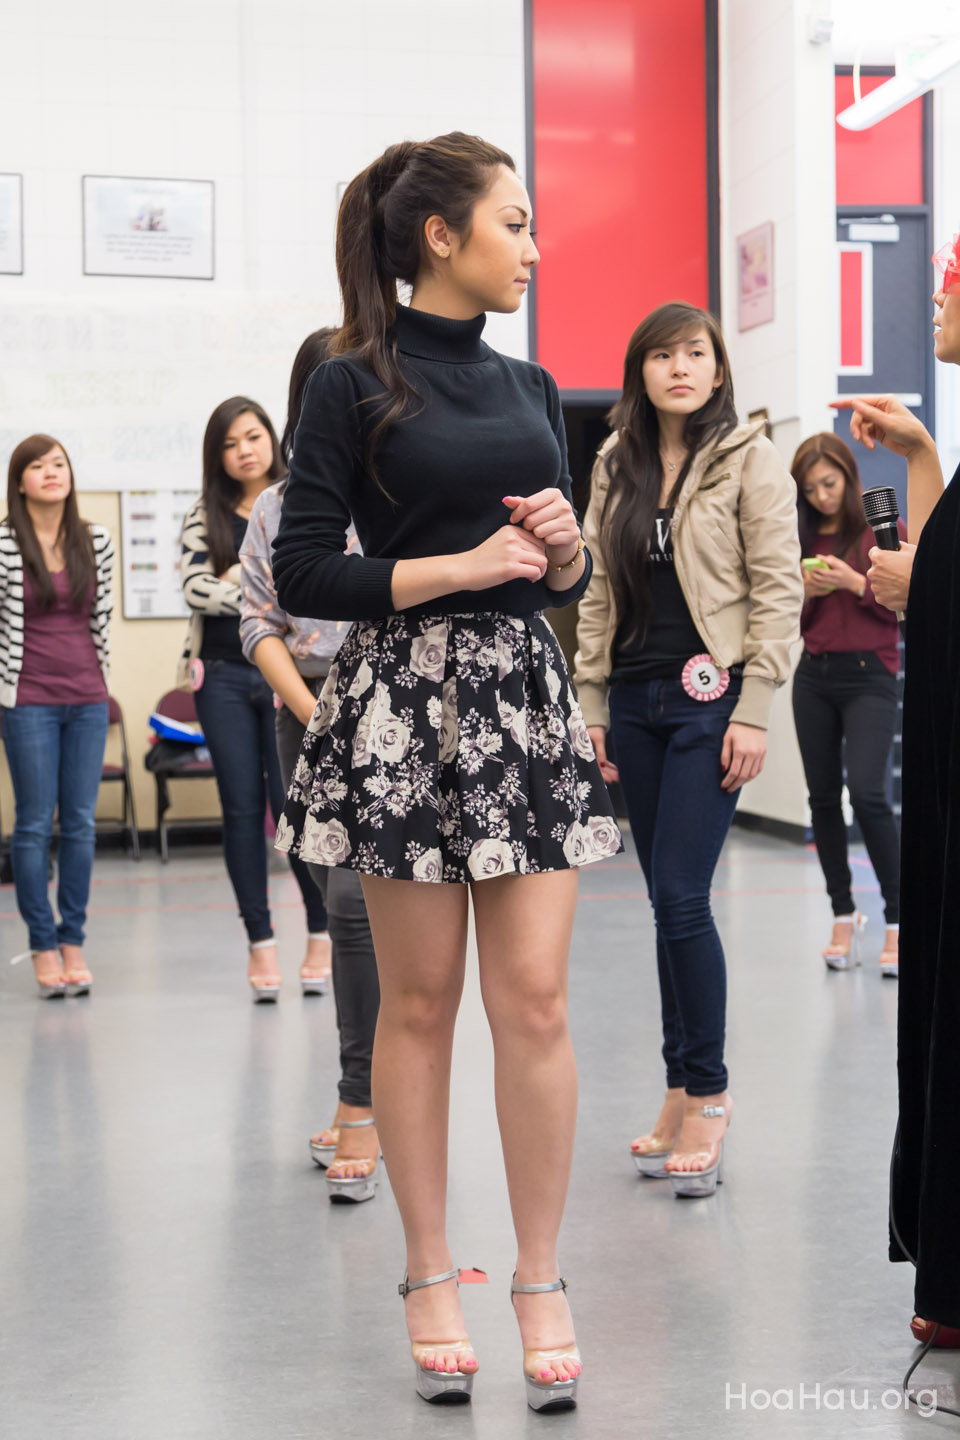 Contestant Practice - January 18, 2014 at Mt Pleasant High School - Image 123